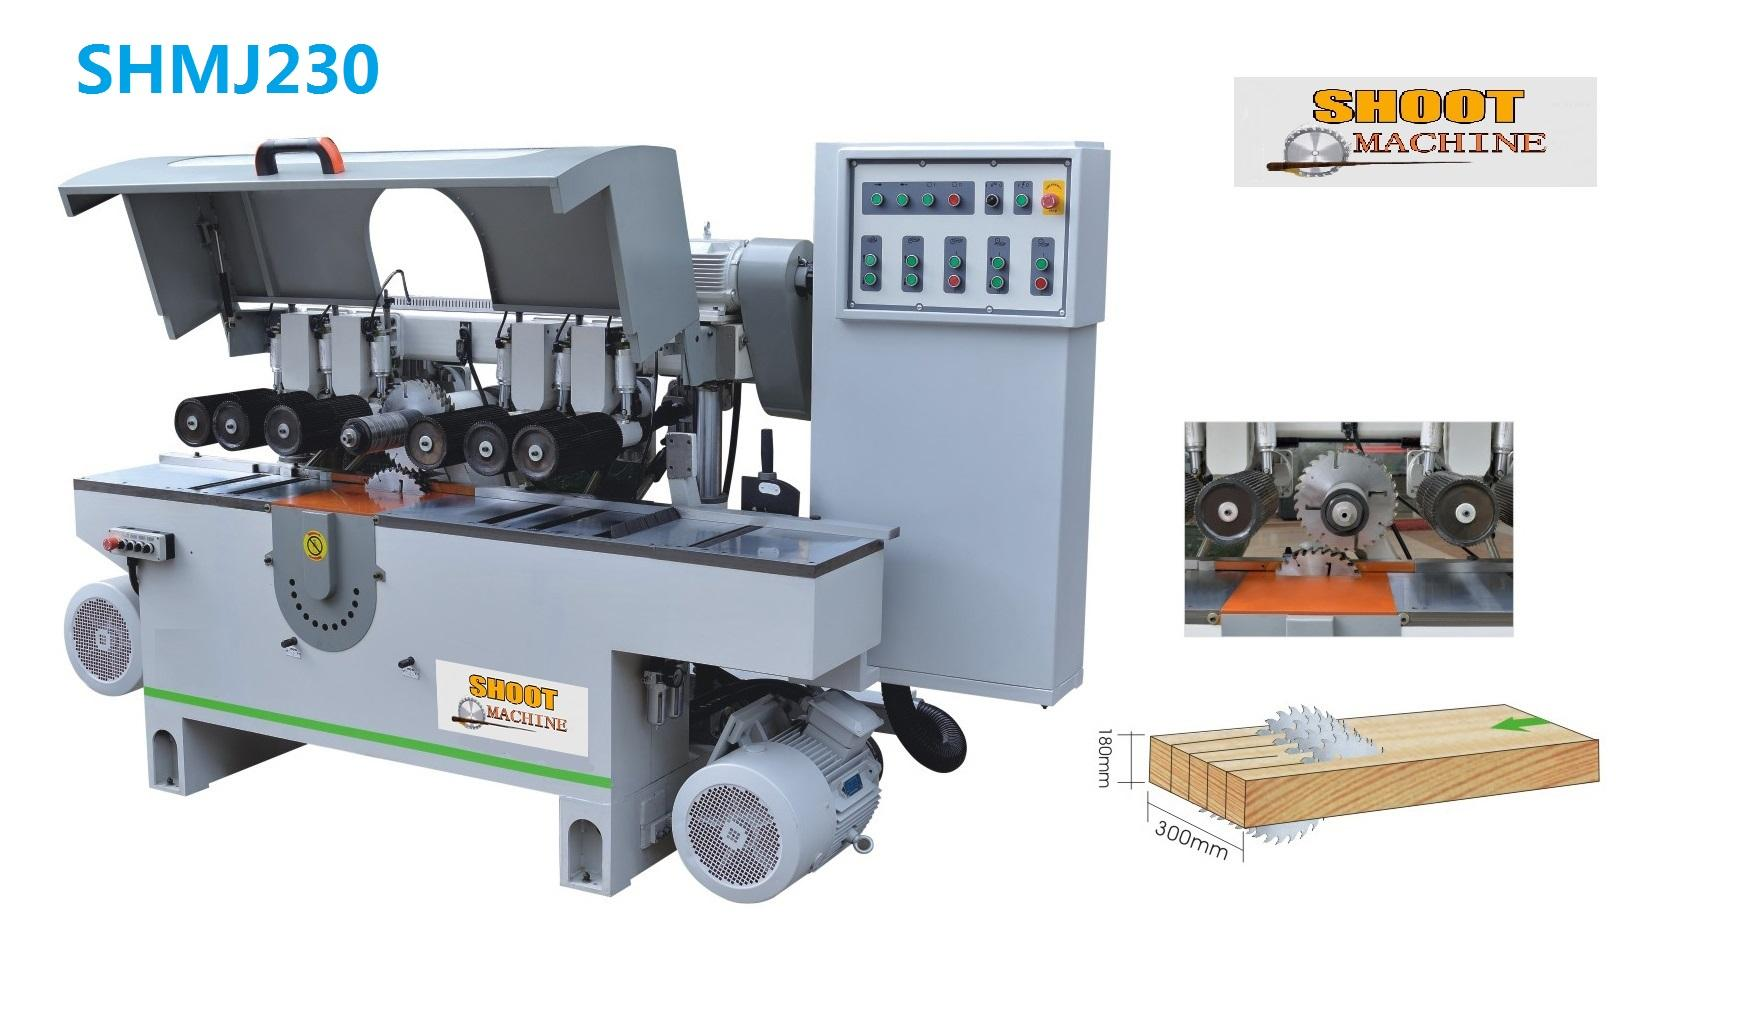 Woodworking Multiple Rip Saw Machine with up & down saw blade,SHMJ230